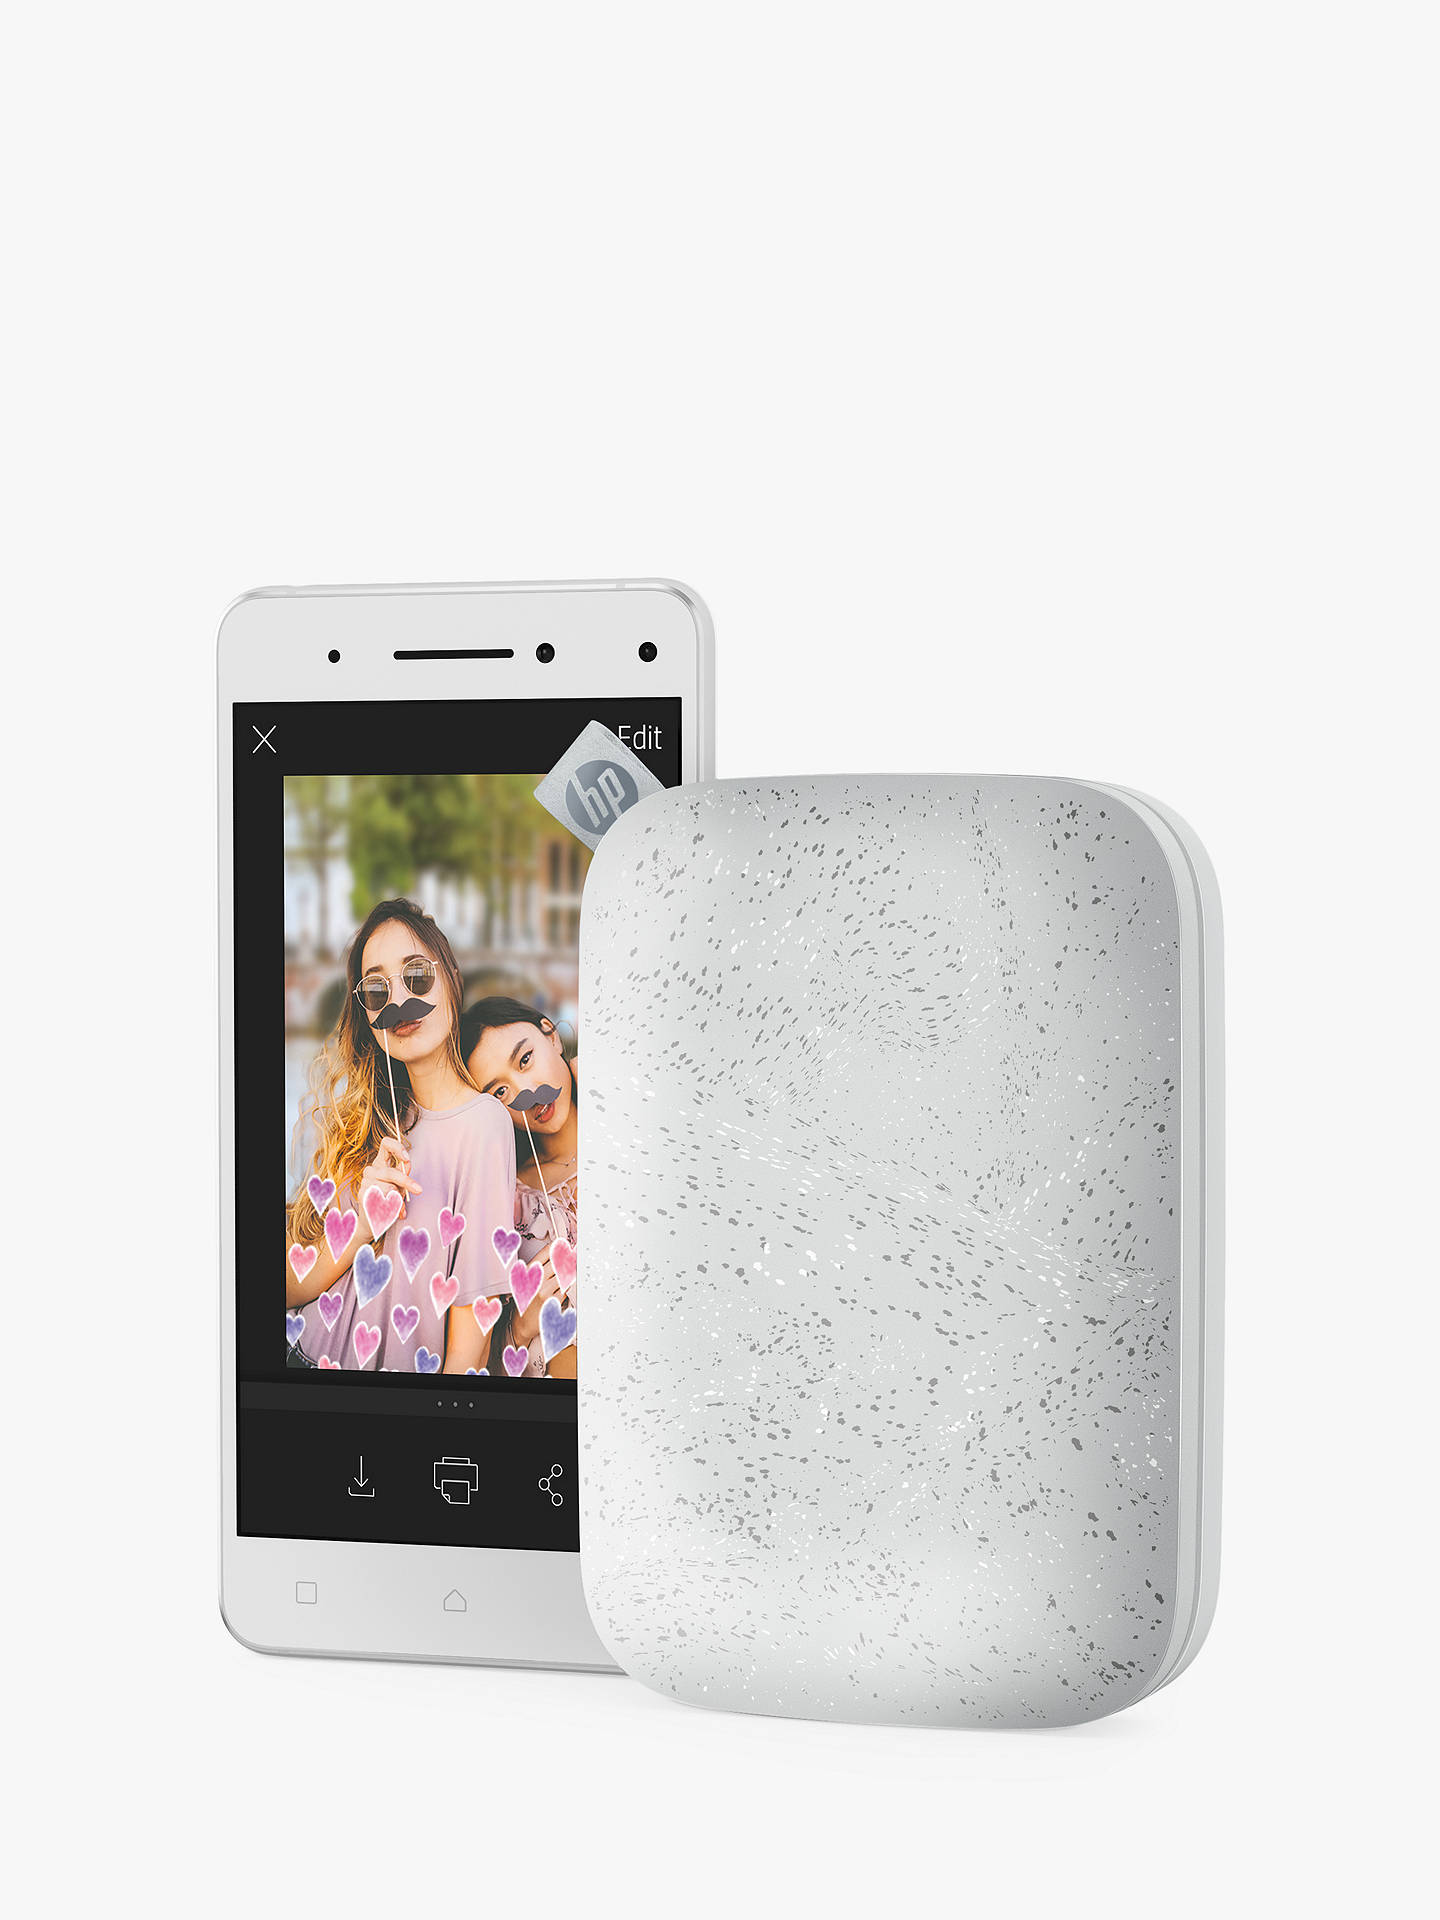 Buy HP Sprocket 200 Portable Photo Printer, Limited Edition Gift Box, Luna Pearl Online at johnlewis.com